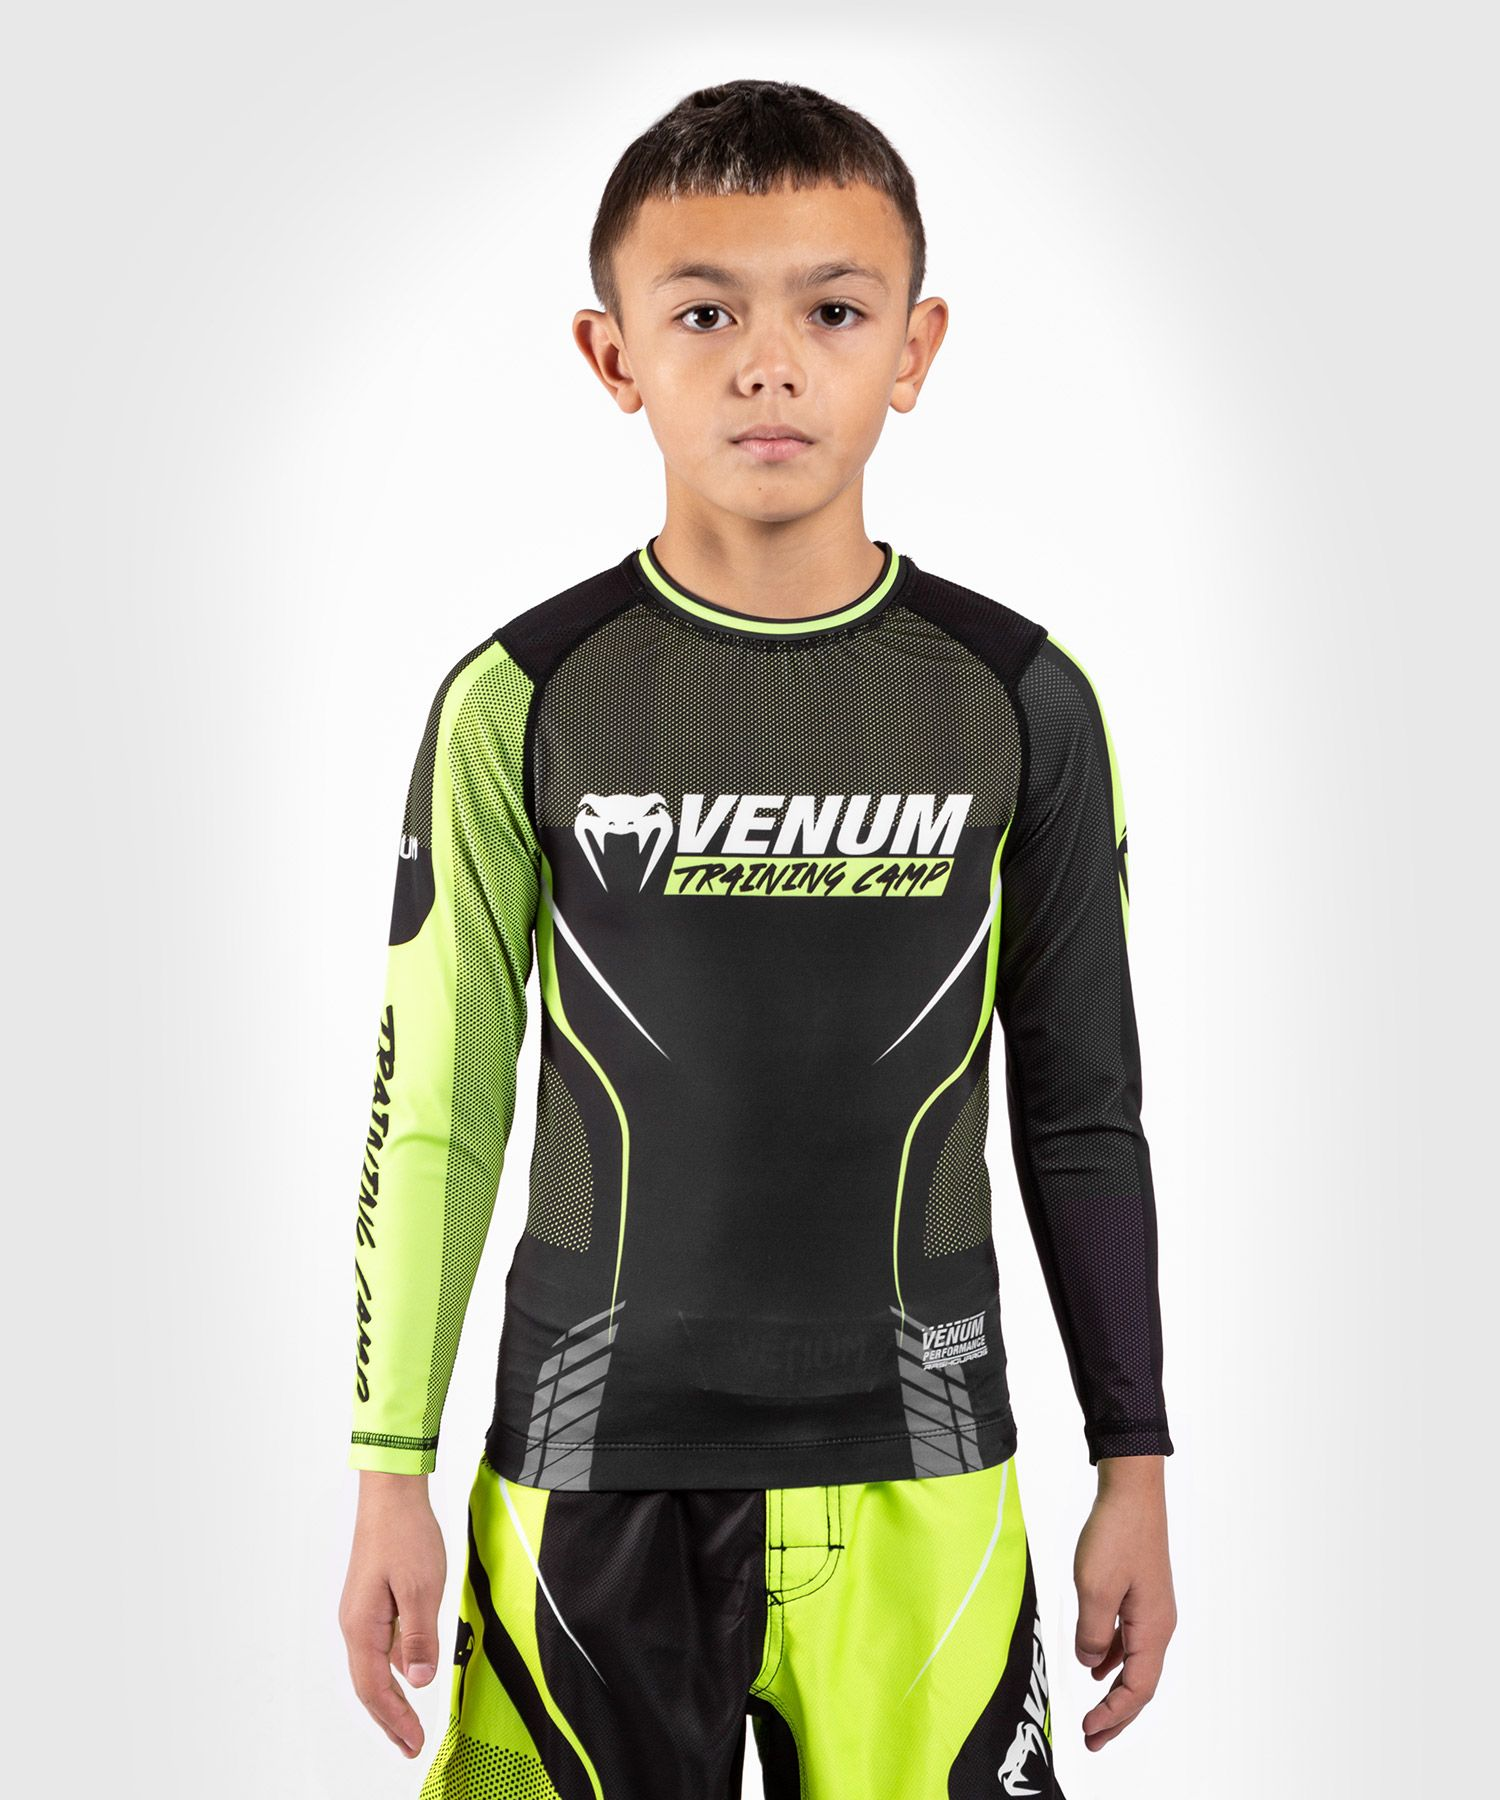 Venum Training Camp 3.0 Rashguard - niños